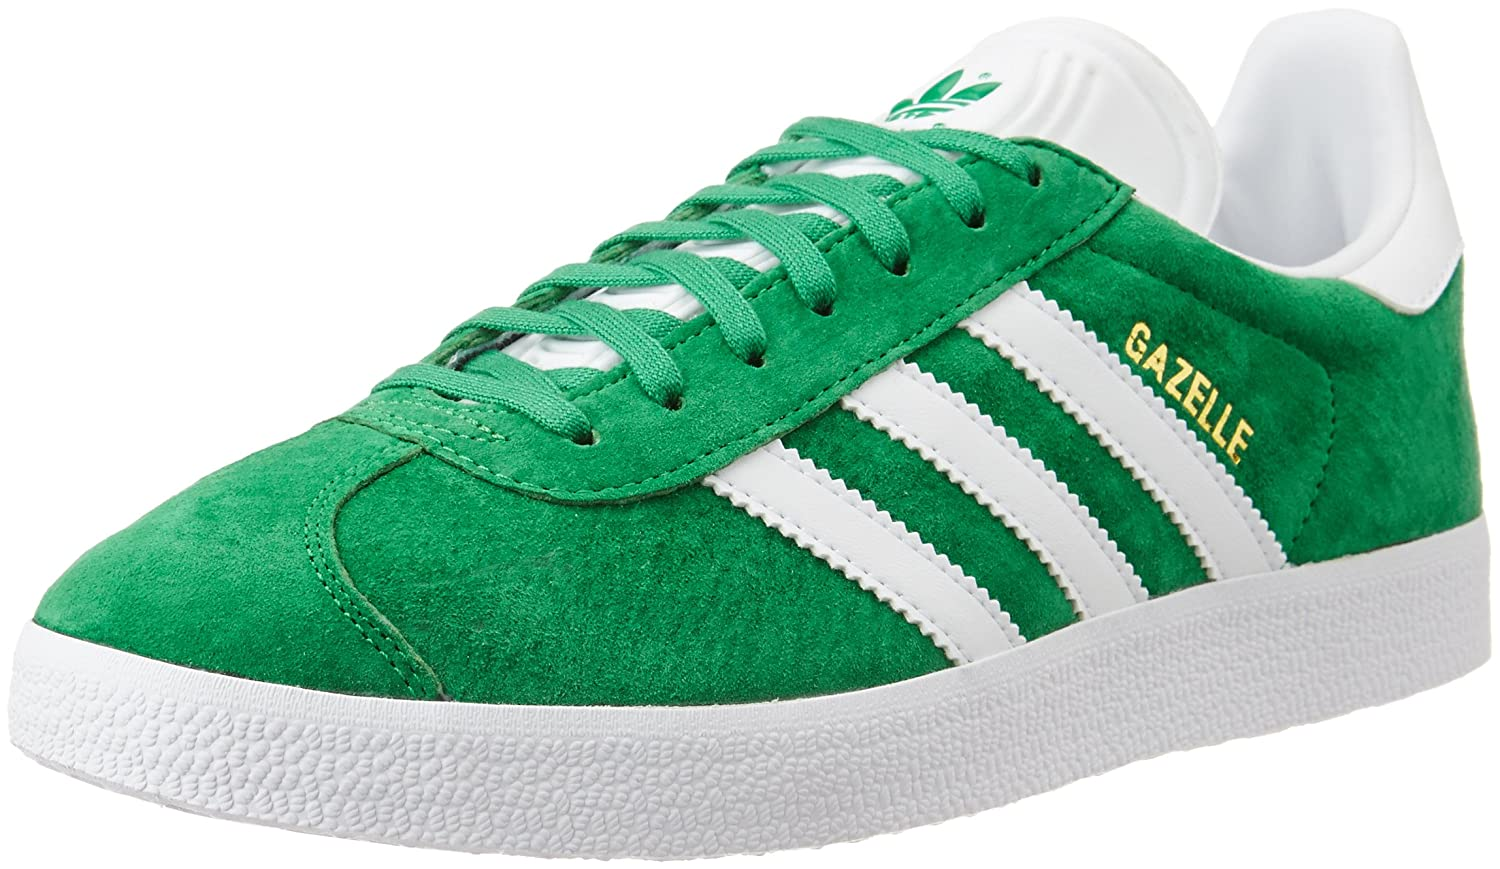 adidas Orignals Gazelle Mens Trainers Sneakers B01EI9IELA 7 M UK|Green